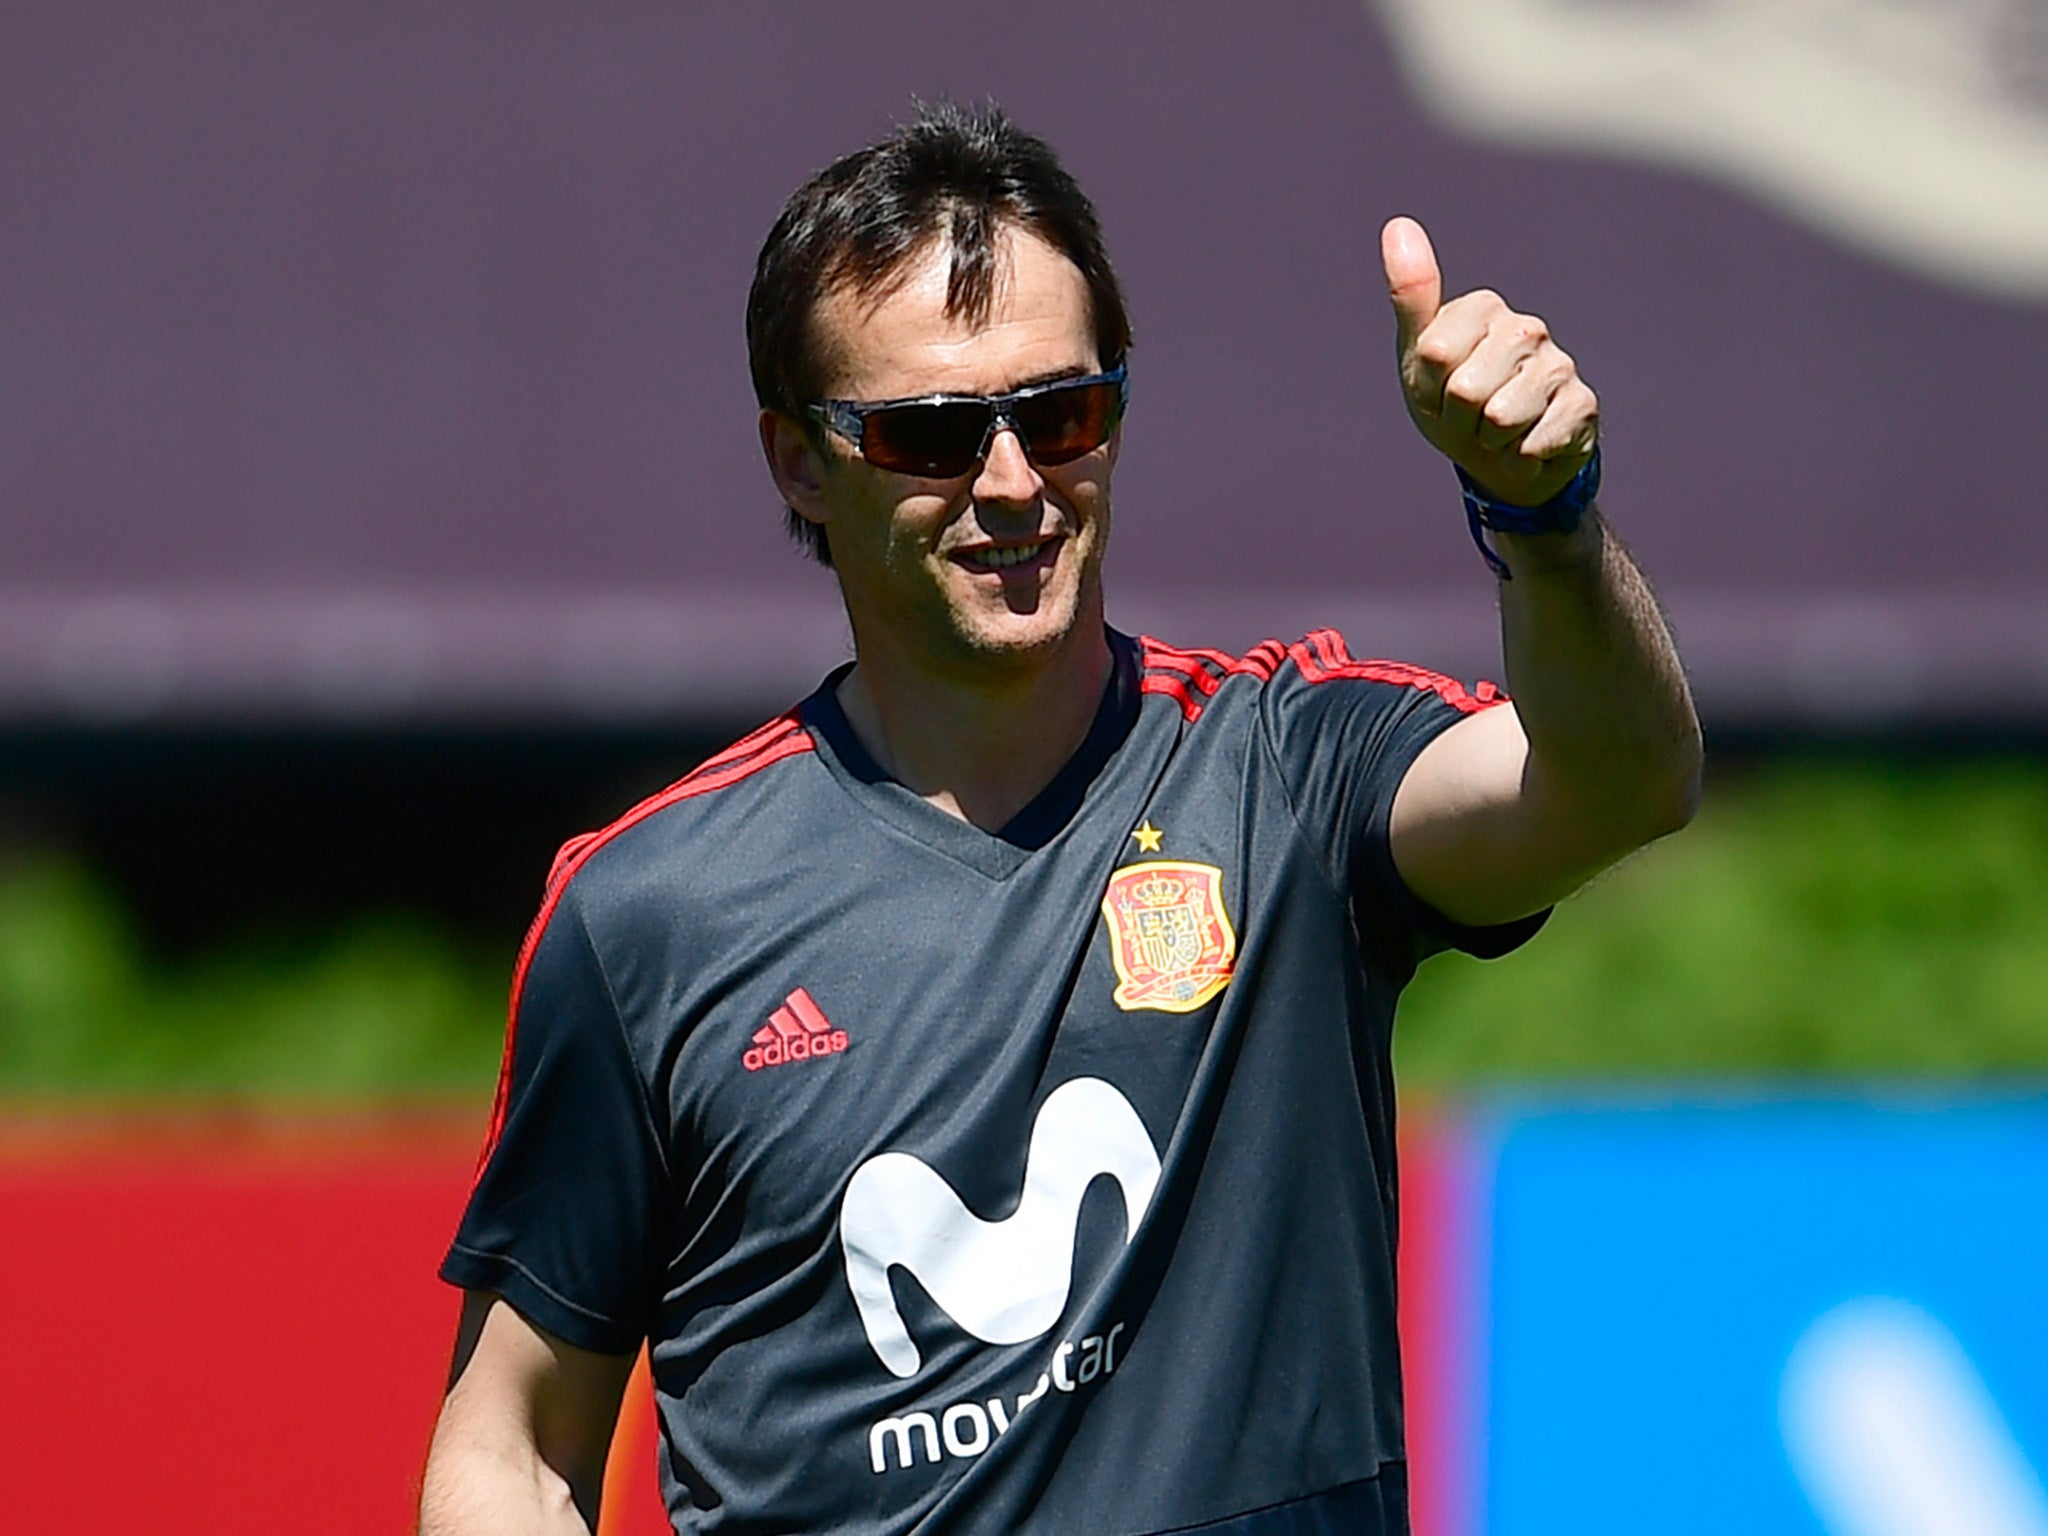 Real Madrid announce Spain head coach Julen Lopetegui to take over as new manager after World Cup 2018